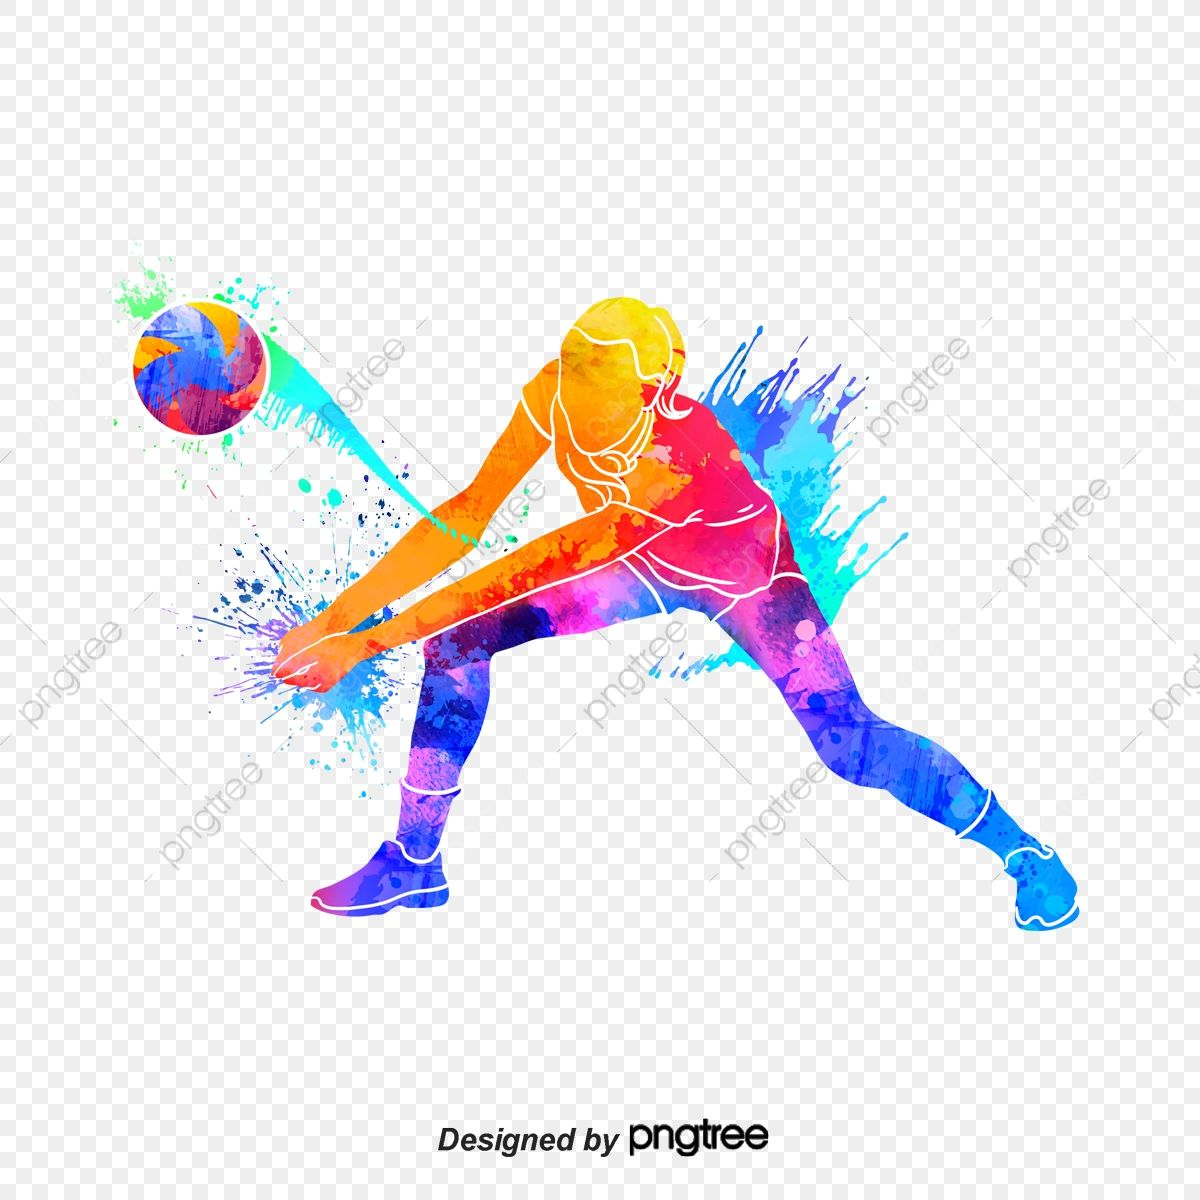 Silhouettes Of Creative Volleyball Players Multicolored Character Sports Png Transparent Clipart Image And Psd File For Free Download In 2020 Volleyball Players Volleyball American Football Players